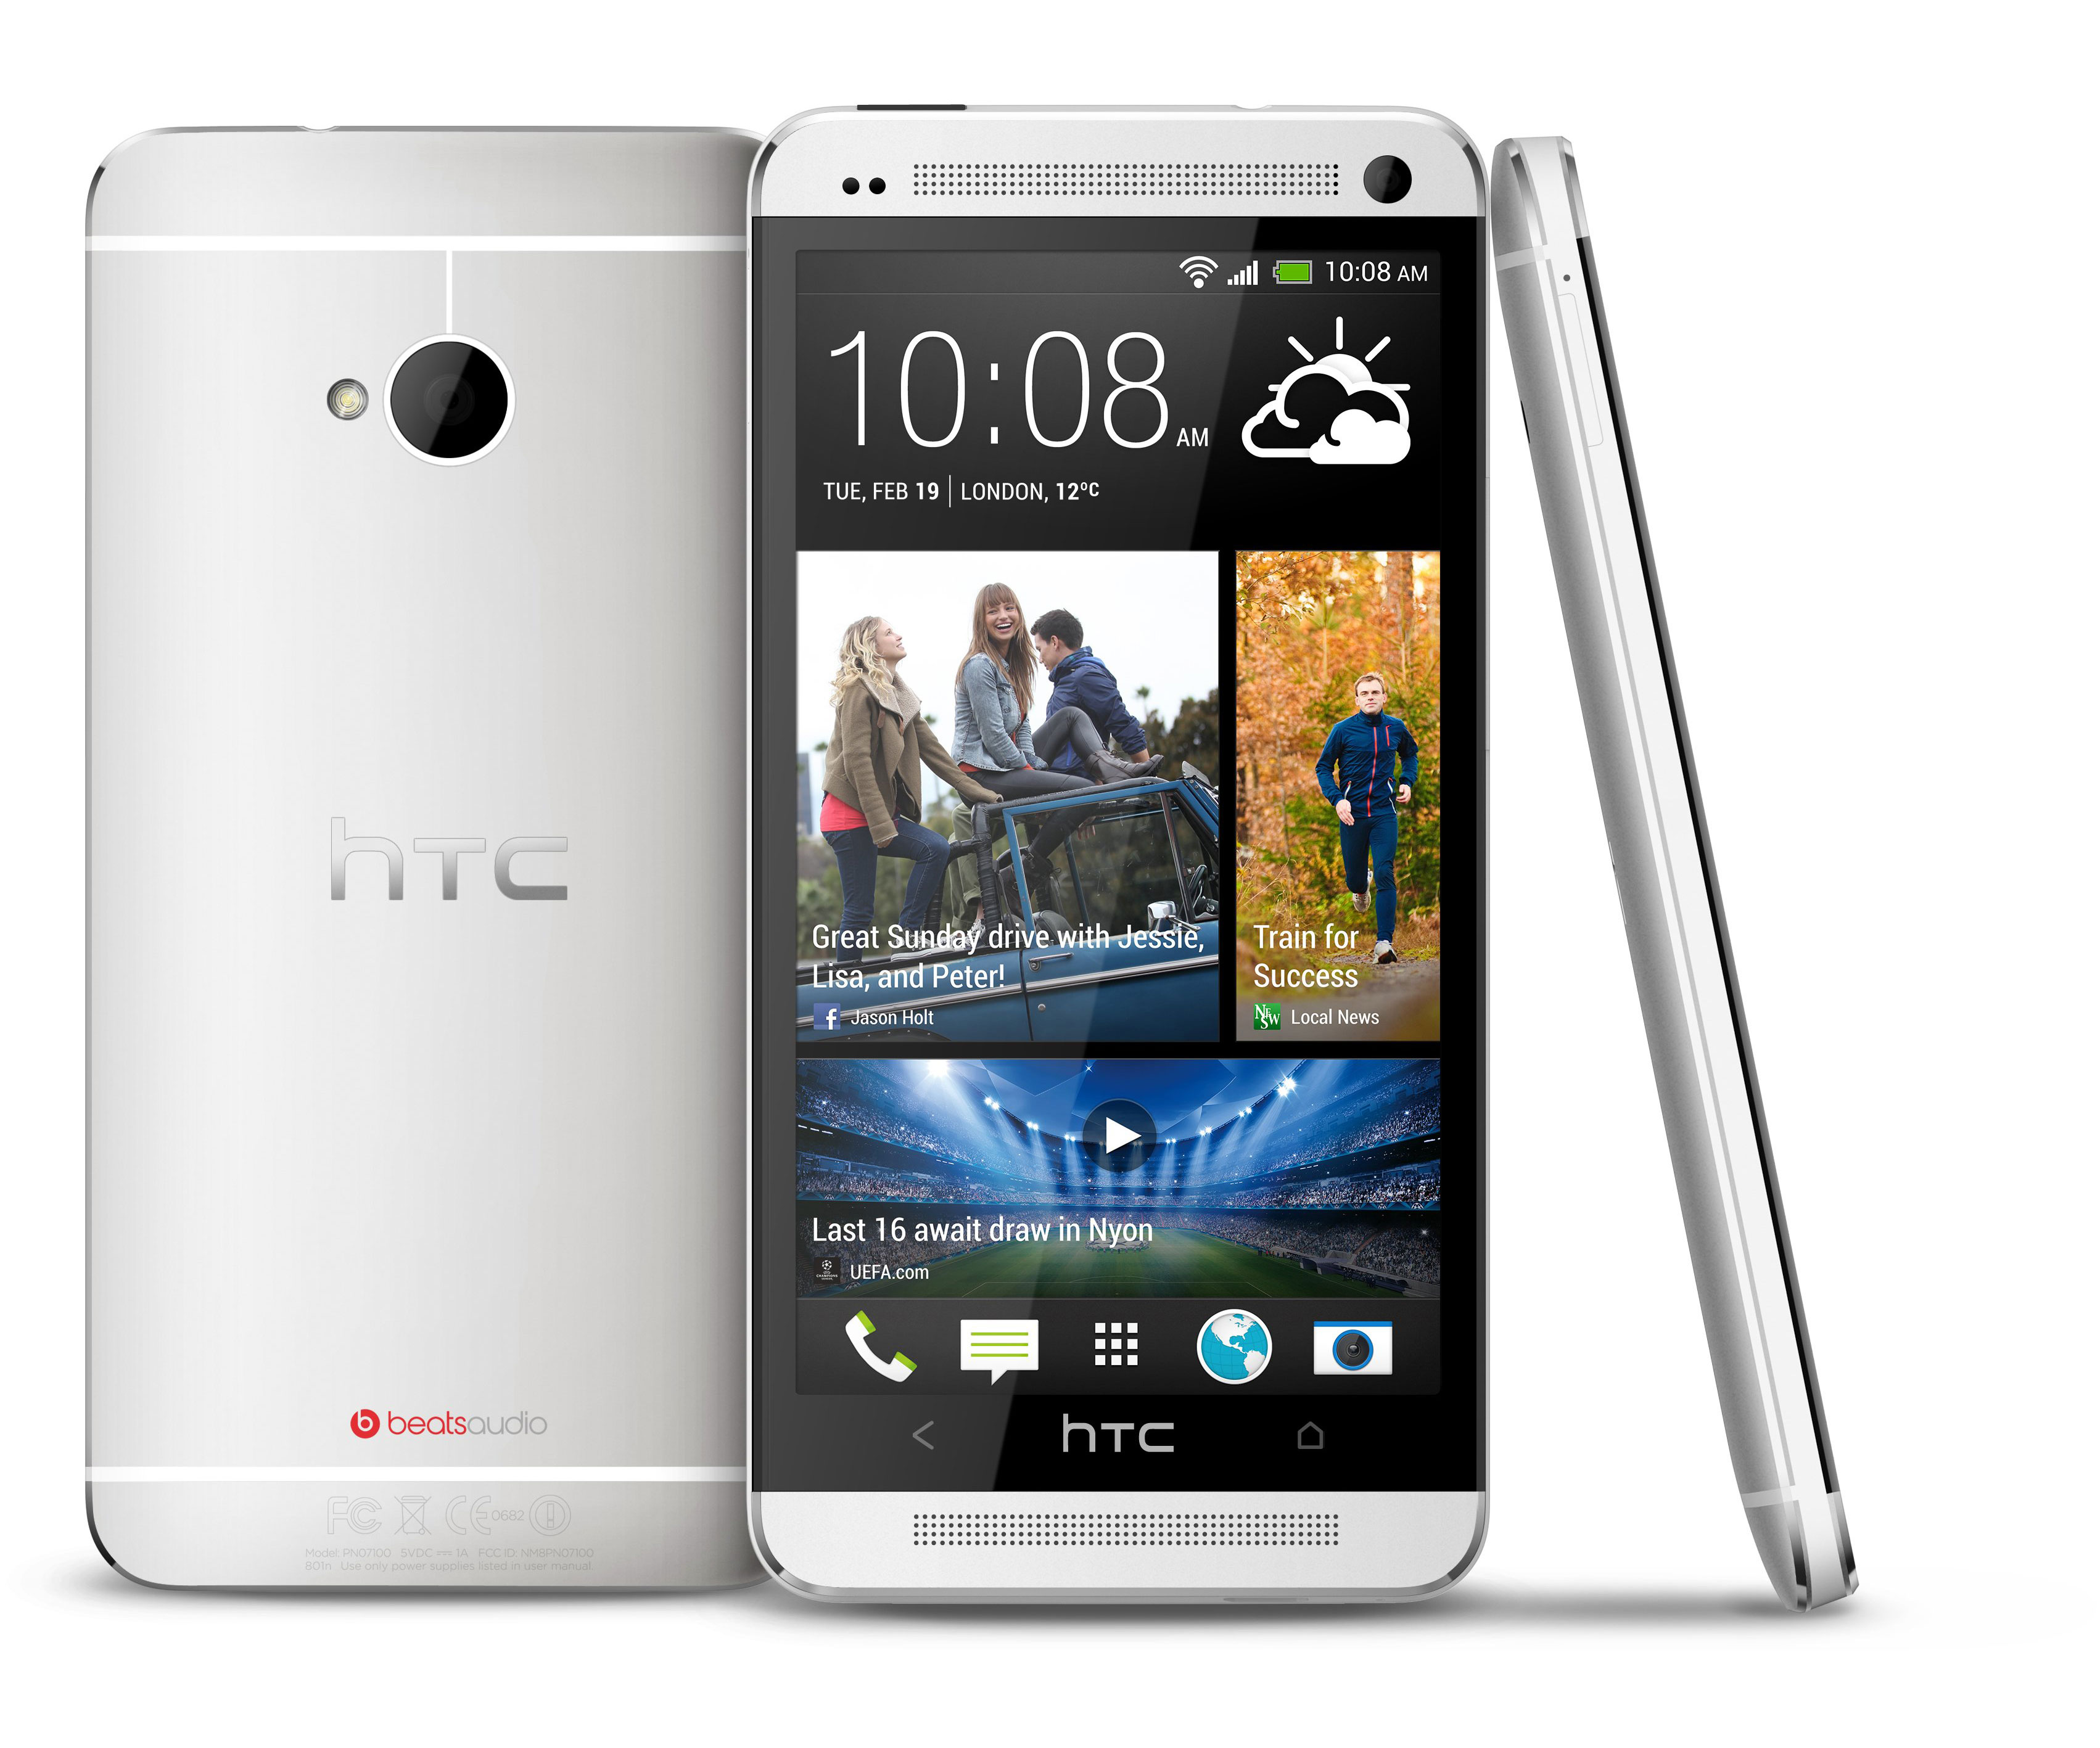 htc one max 32gb 4g lte android phone quad core processor in silver rh cellularcountry com sprint cell phone manuals free Sprint New Phones Coming Out